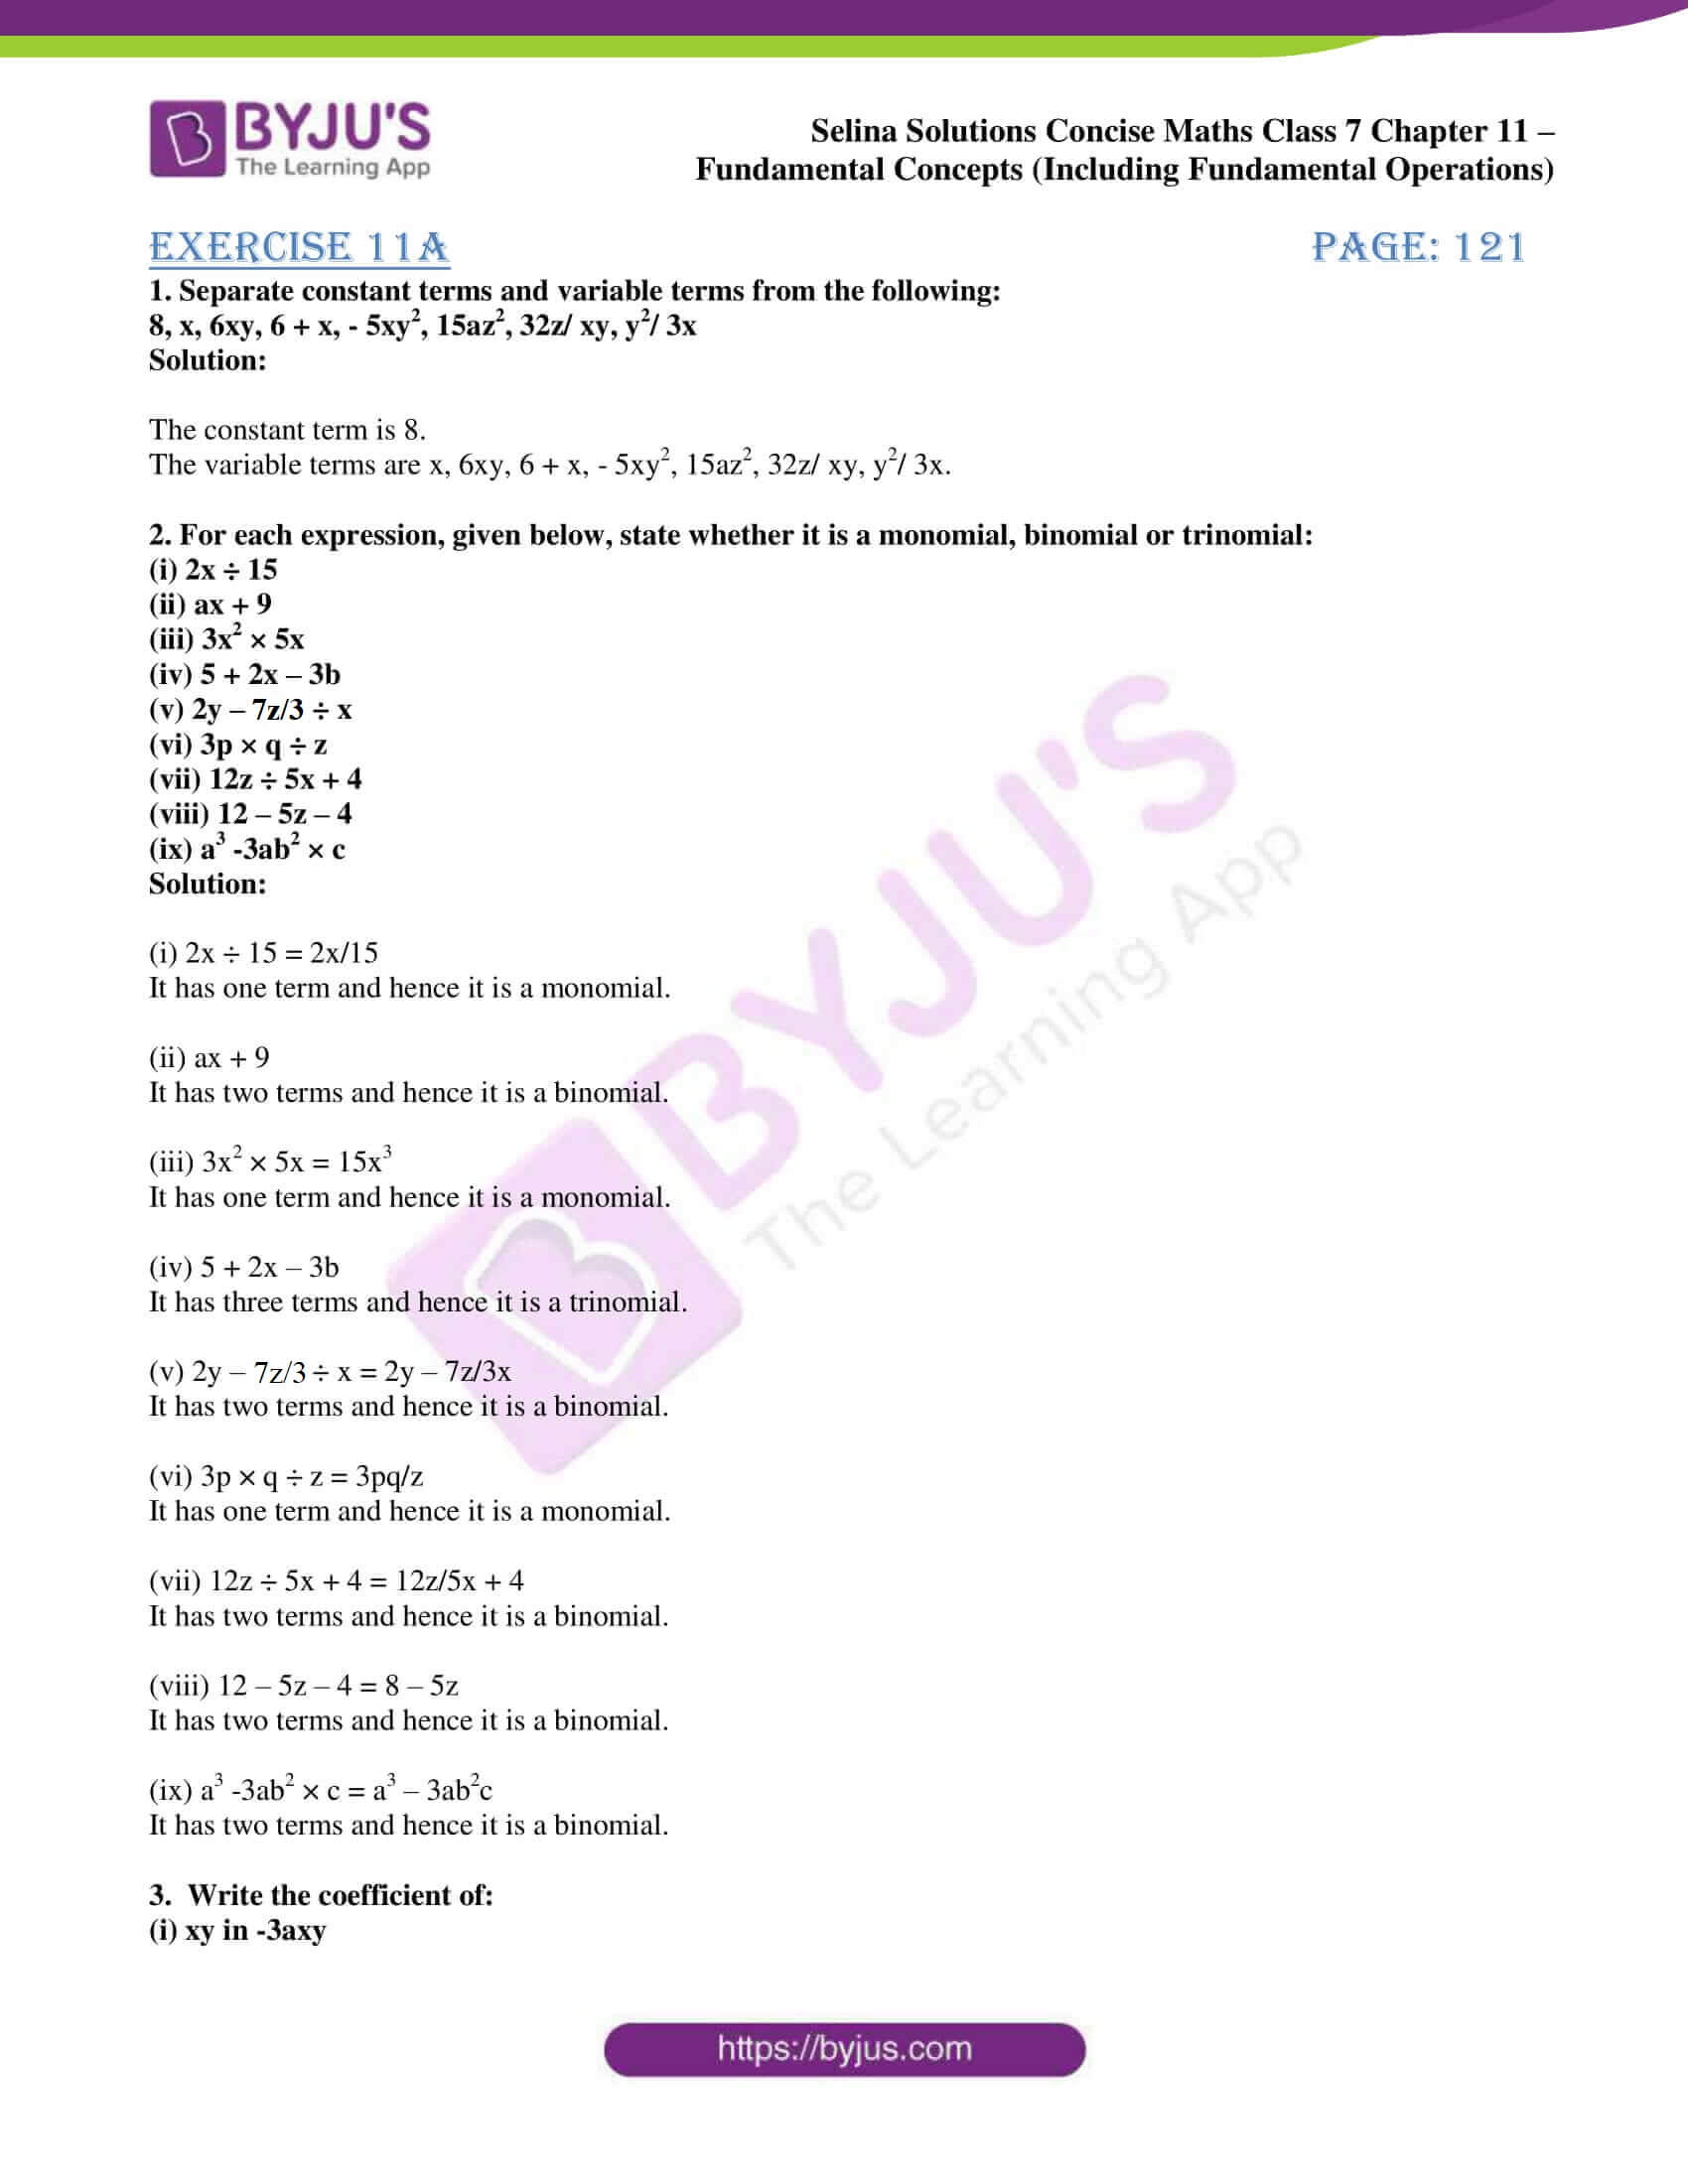 selina solution concise maths class 7 ch 11a 1